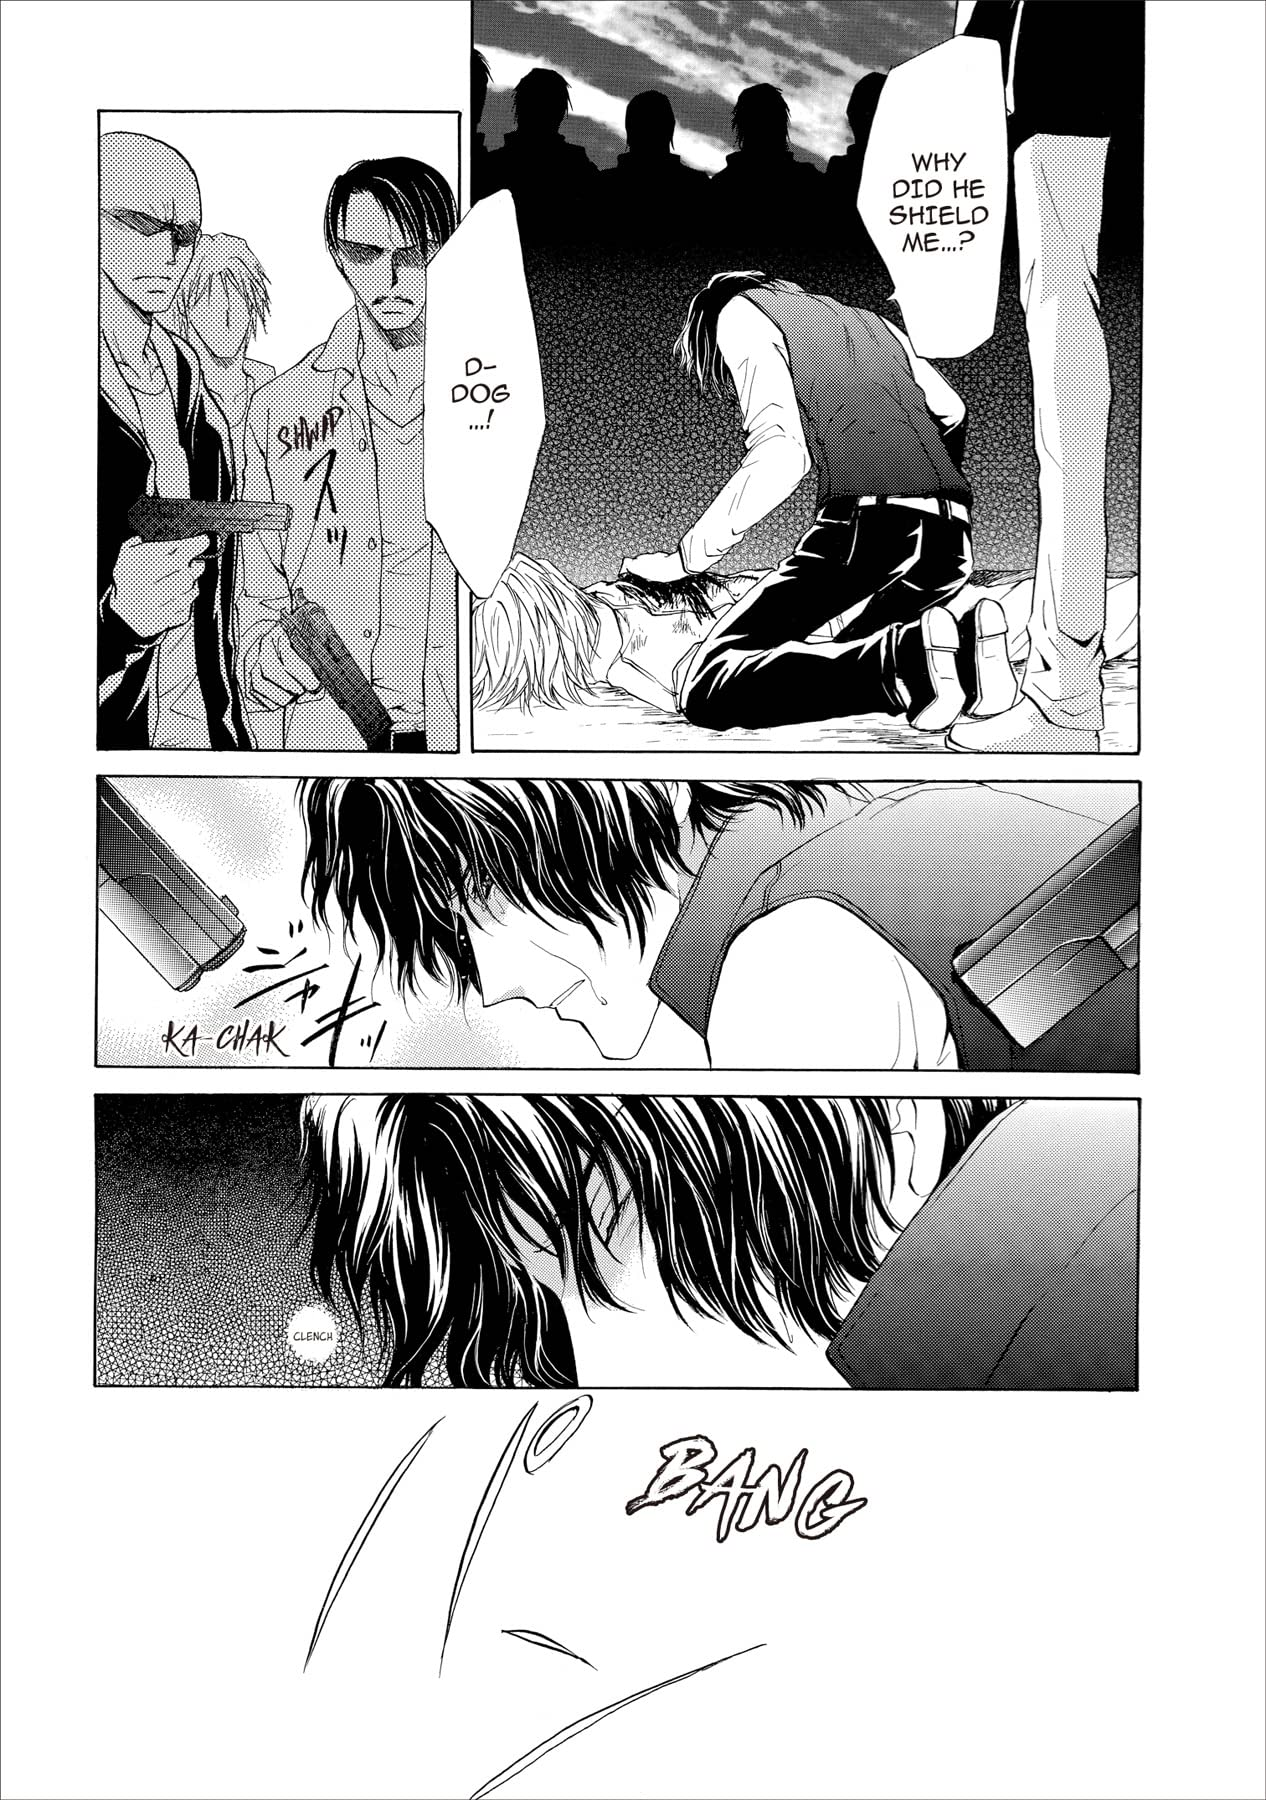 BLUE SHEEP'S REVERIE (Yaoi Manga) #21